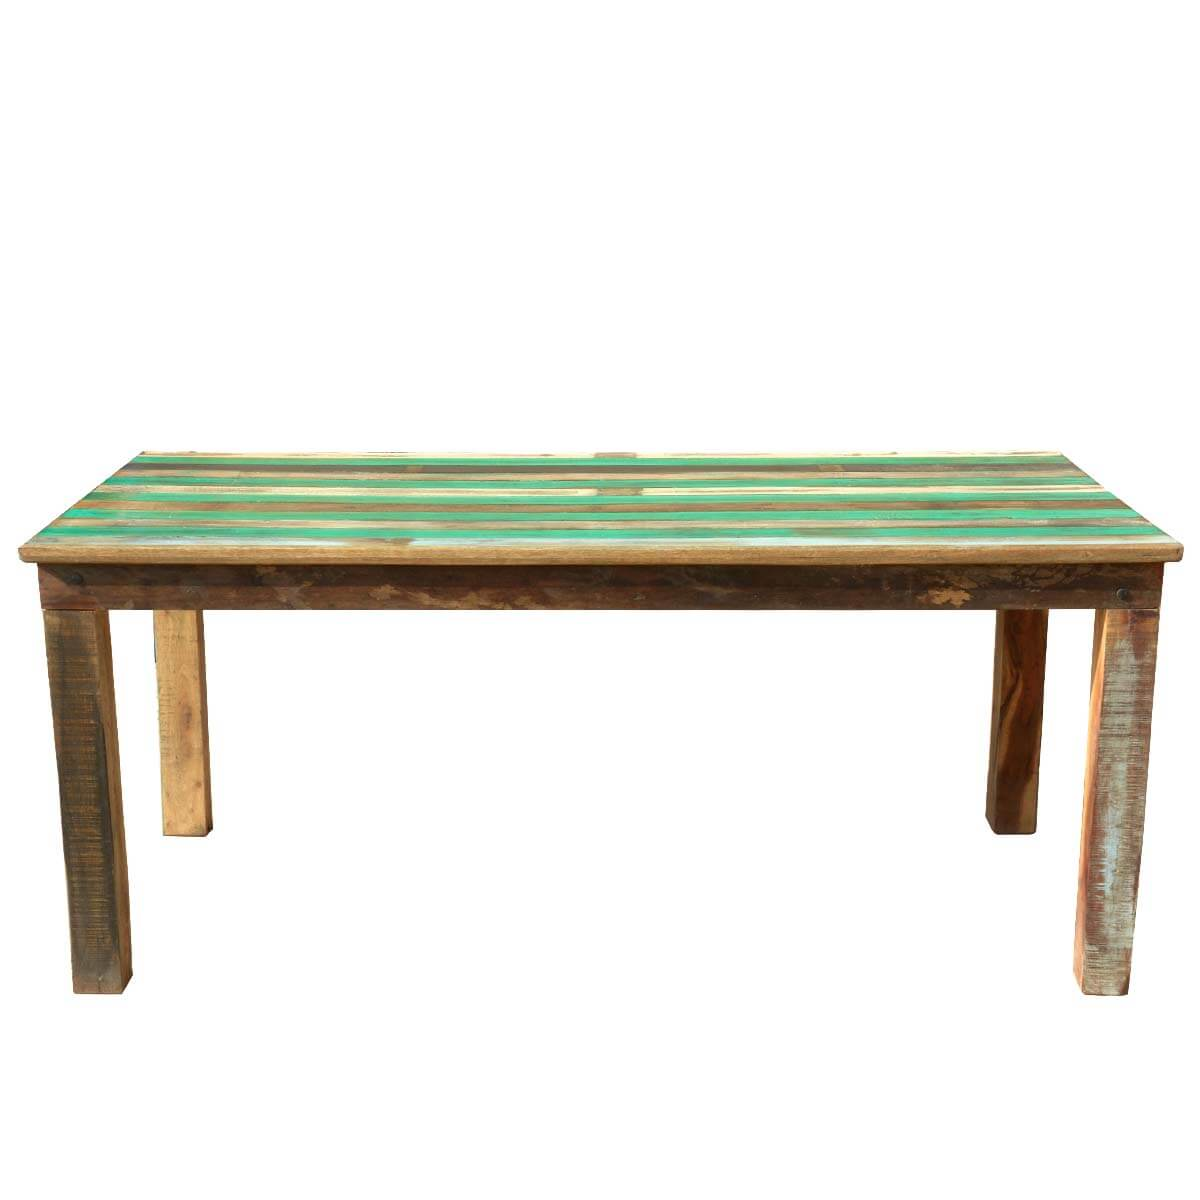 Reclaimed Wood Table Top Reclaimed Wood Round Dining Table Reclaimed Wood Dining Table Top